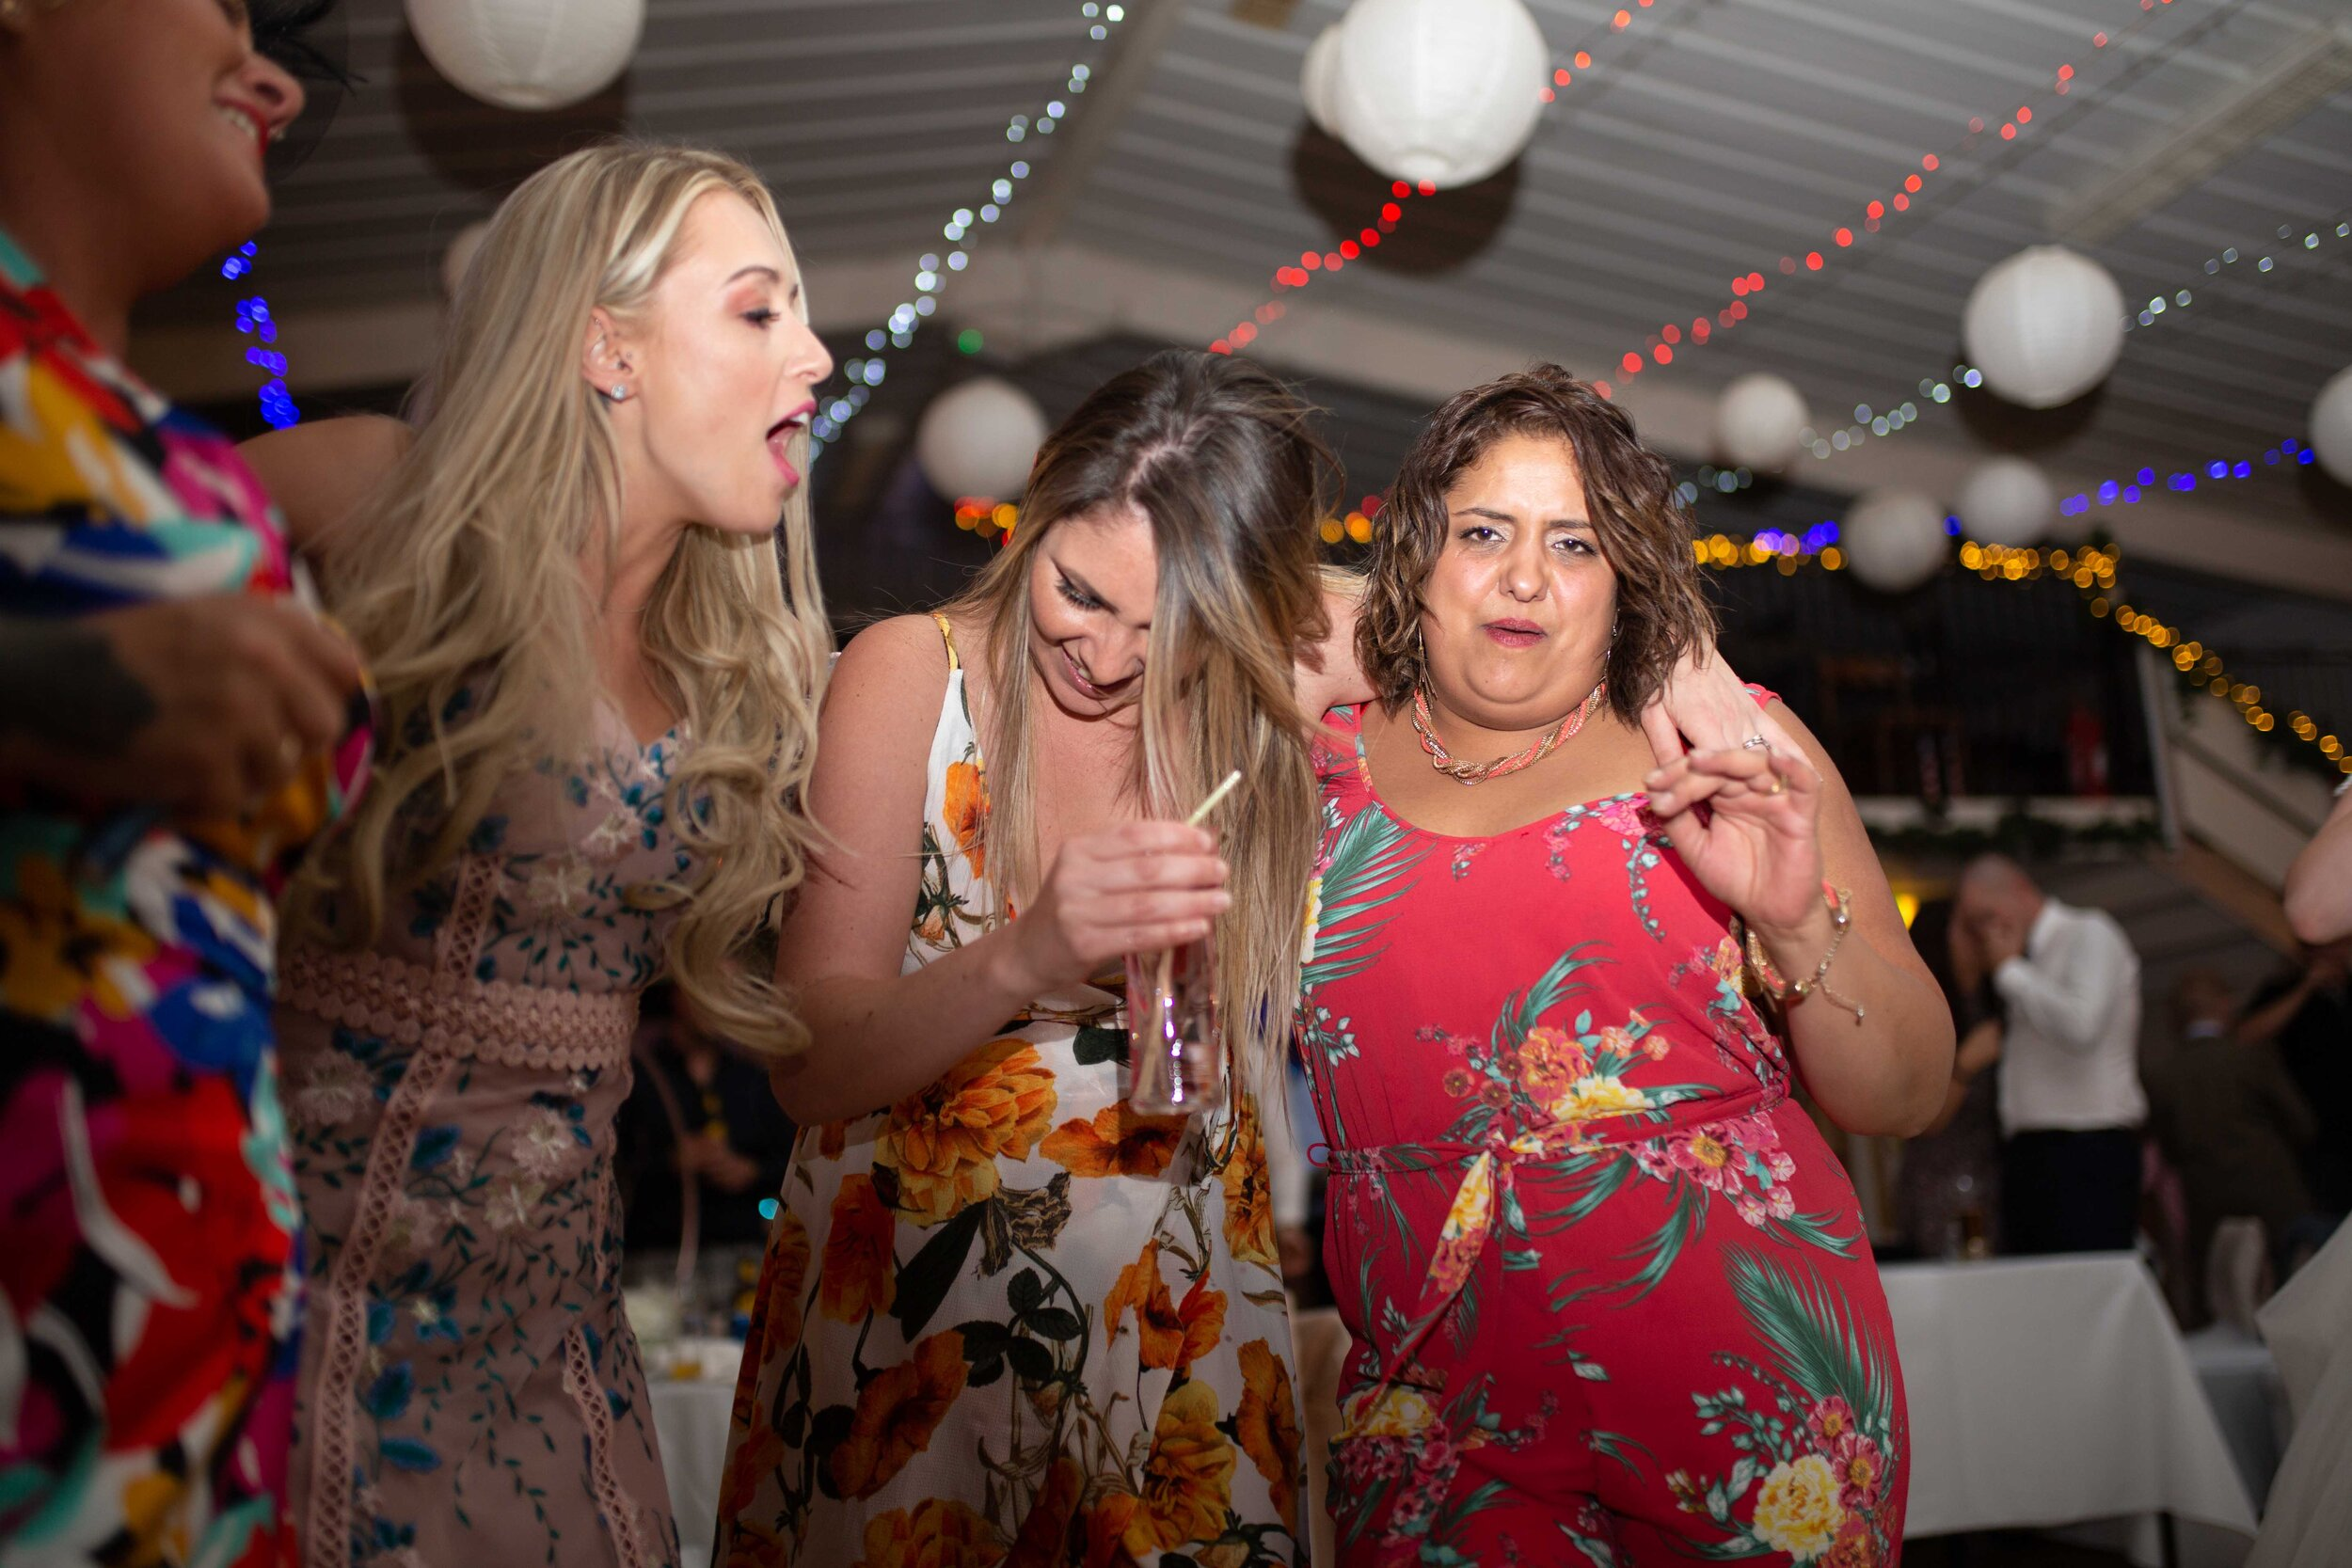 Lea Cooper photography - wedding photography - st Lawrence church dalaston West Midlands Willenhall Wednesday wedding photographer Brookfields club house cannock road - 42.JPG